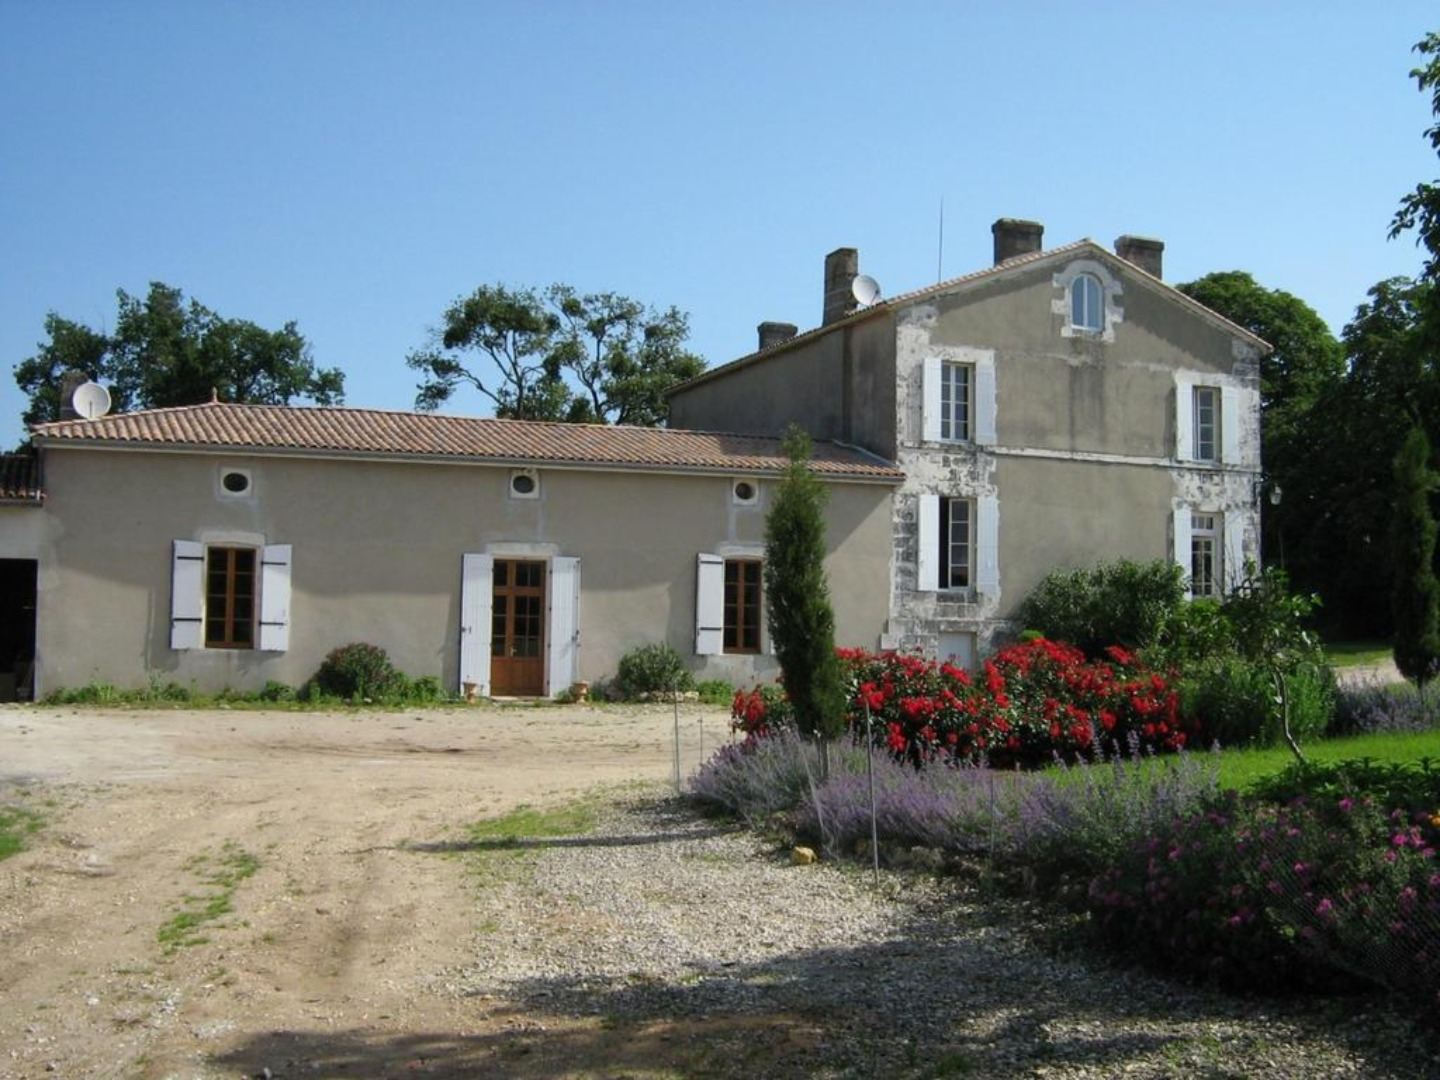 A house with bushes in front of a brick building at Domaine les Galards.